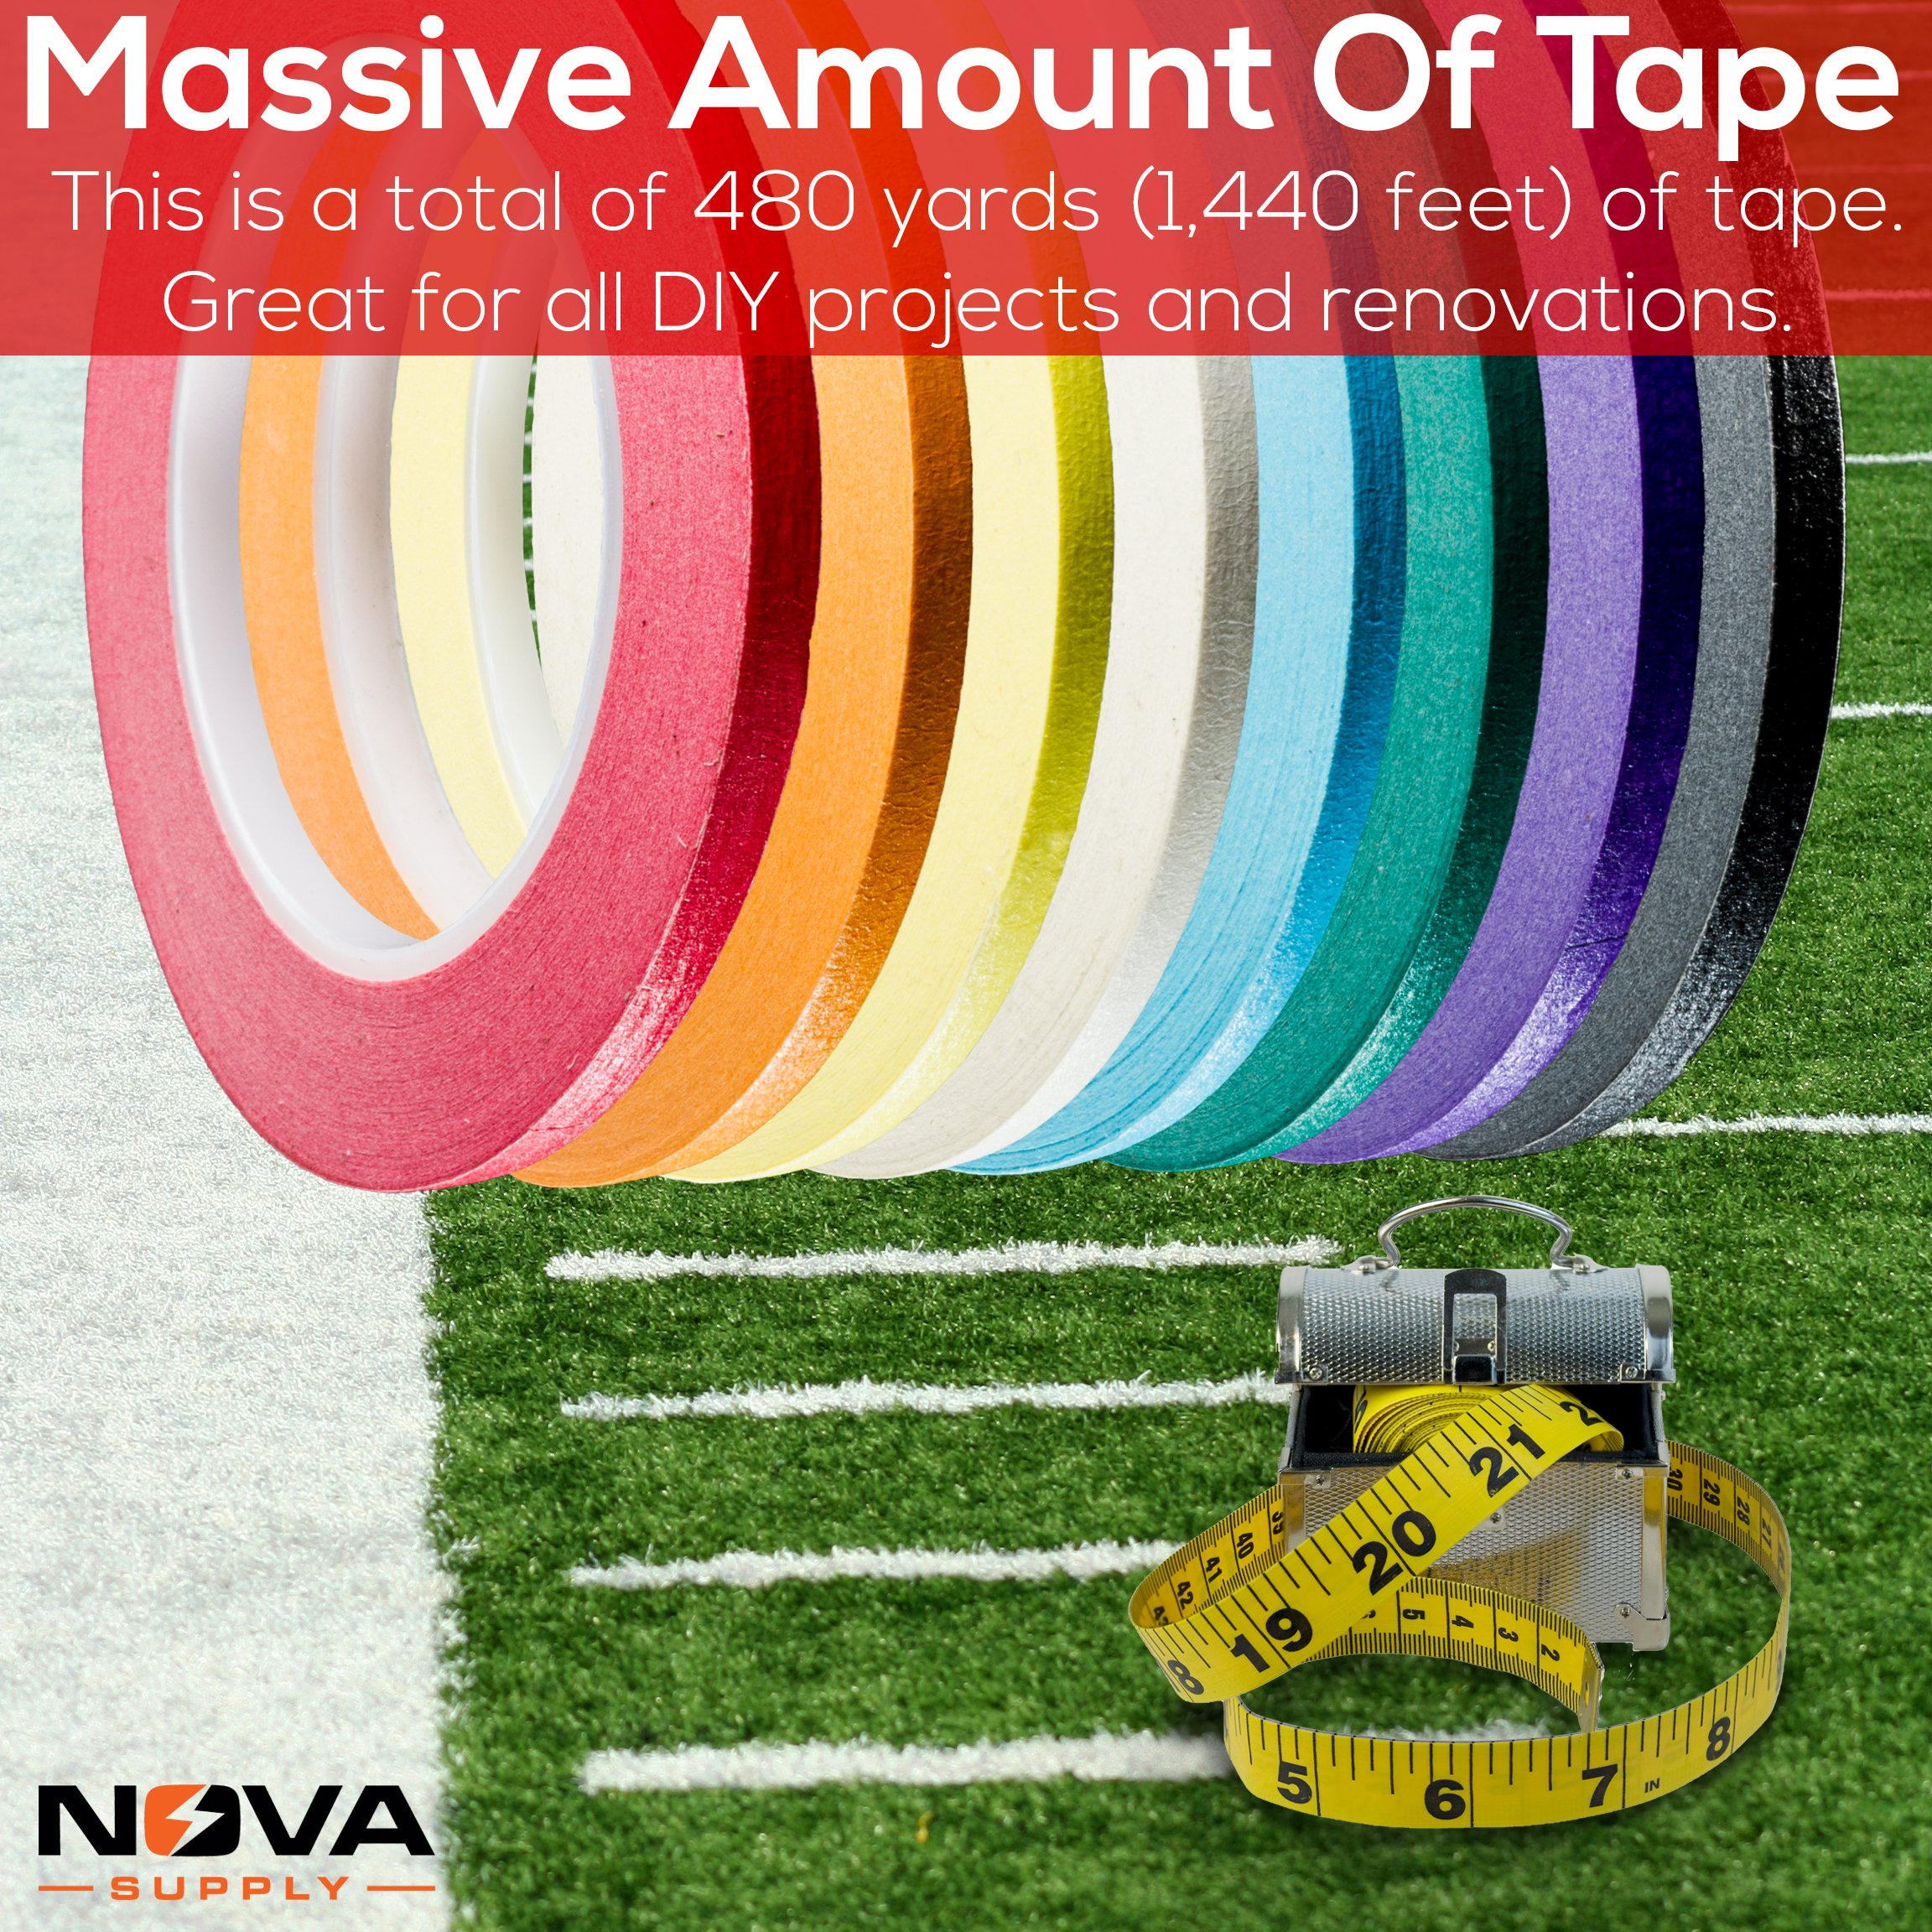 Nova Supplys 1/4in x 60yd Masking Tape, 8 Color Value Pack. Professional Grade Adhesive is Super Thin, Conforms to Irregular Surfaces, Is Easy to Tear & Release for Labeling, Painting, & Decorating. by Nova (Image #7)